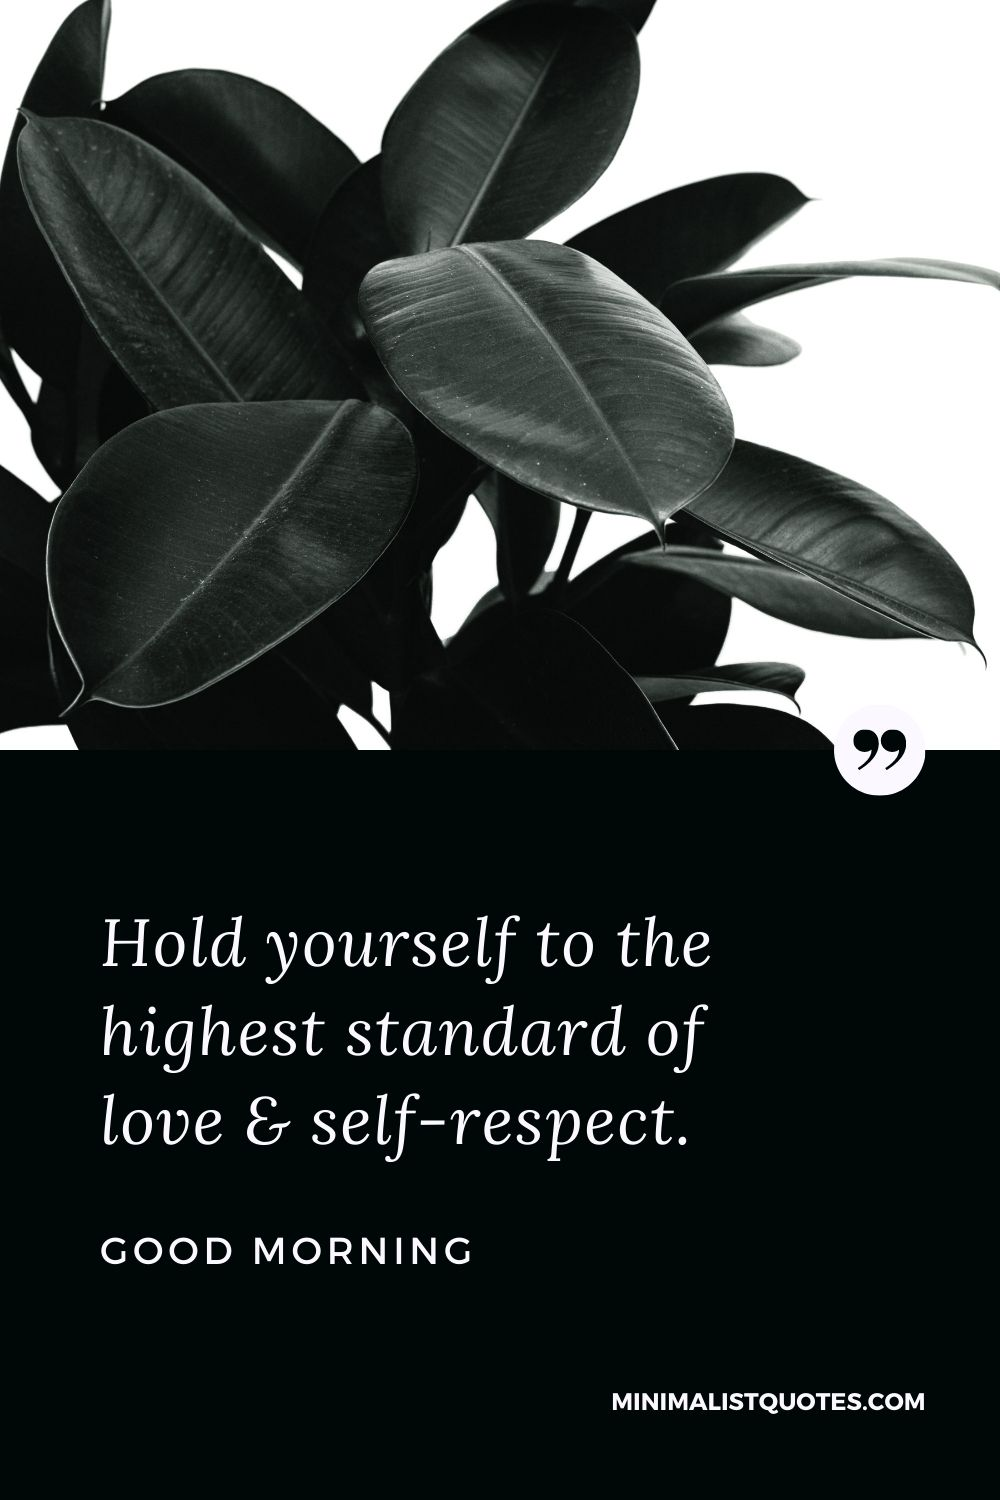 Good Morning Wish & Message With Image: Hold yourself to the highest standard of love & self-respect.